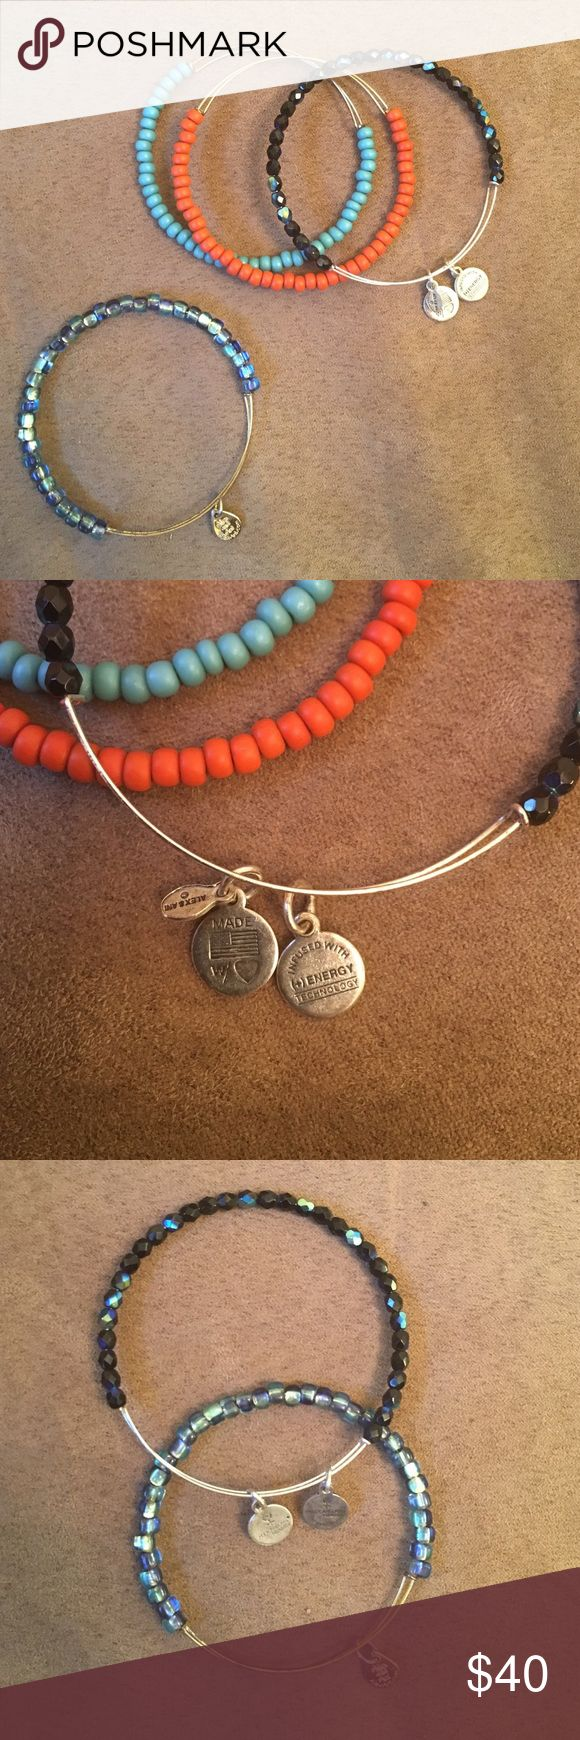 Alex and Annie beaded bracelet bundle. Assortment of four beaded Alex and Annie bracelets! One turquoise on gold band, coral on gold band, iridescent sea blue on gold band and dark iridescent sea blue on silver band. Bohemian and eclectic style. Alex & Ani Jewelry Bracelets